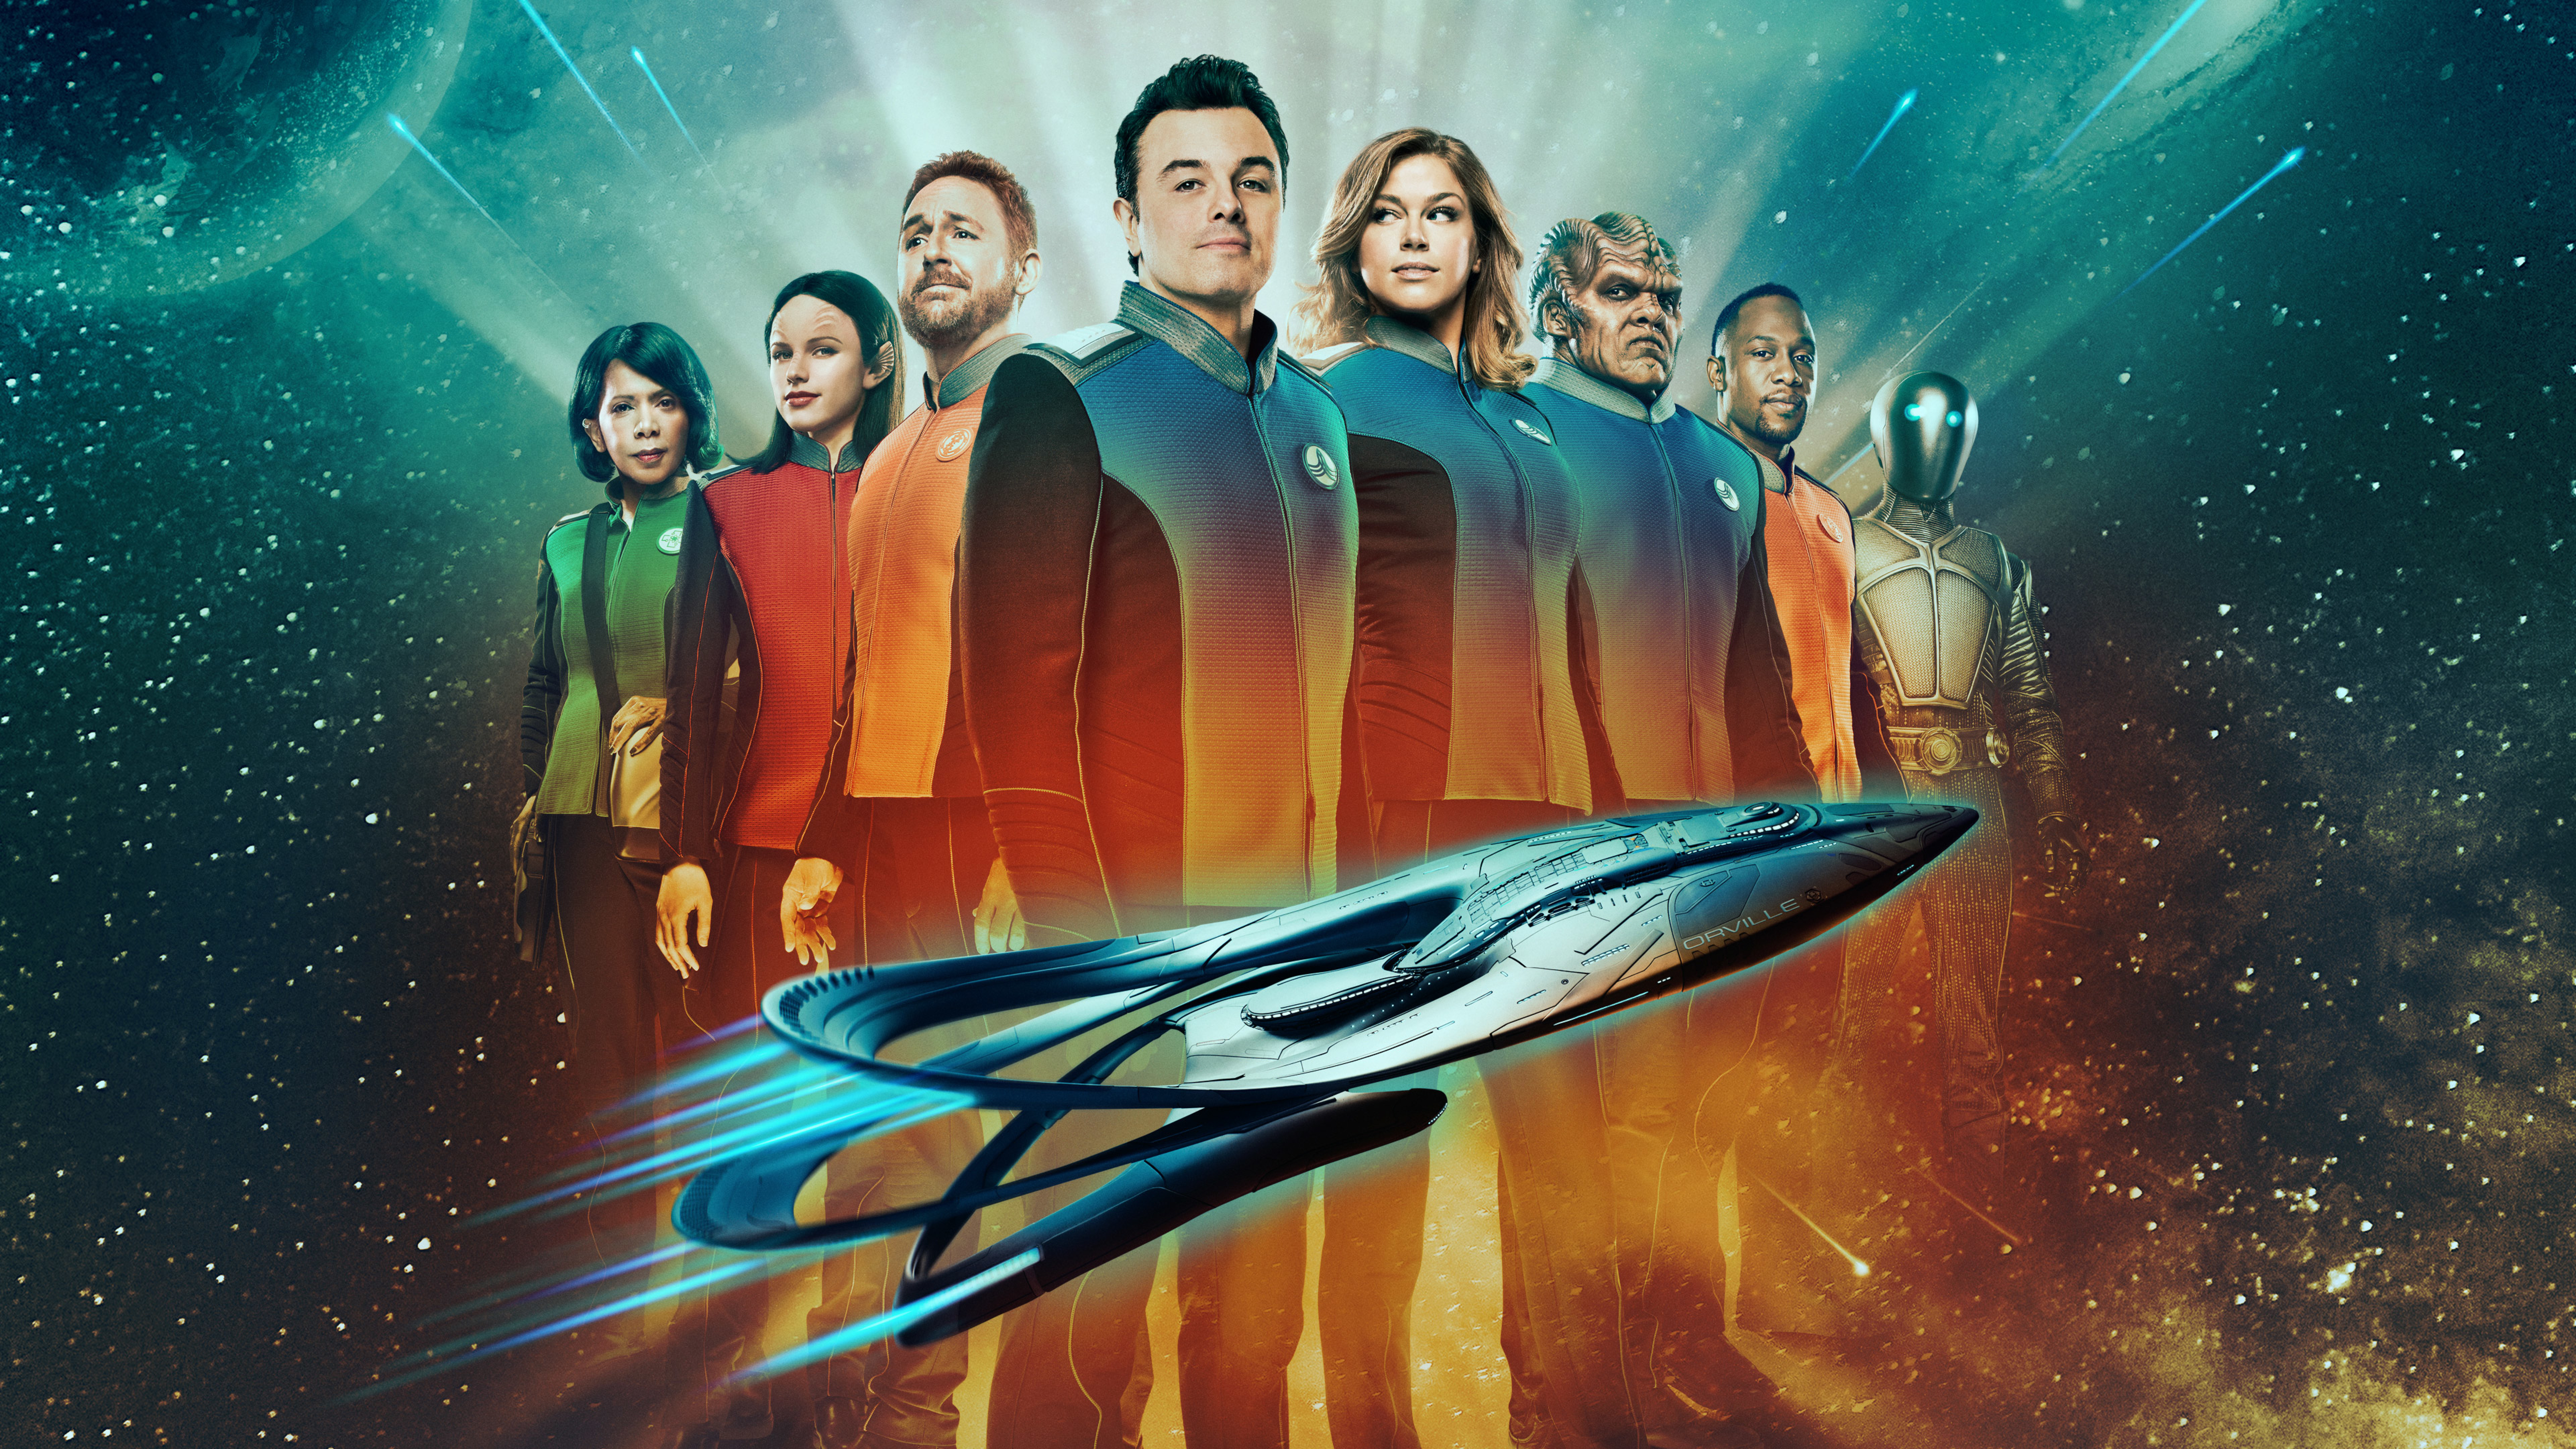 The orville hd 4k wallpaper - Tv series wallpaper 4k ...